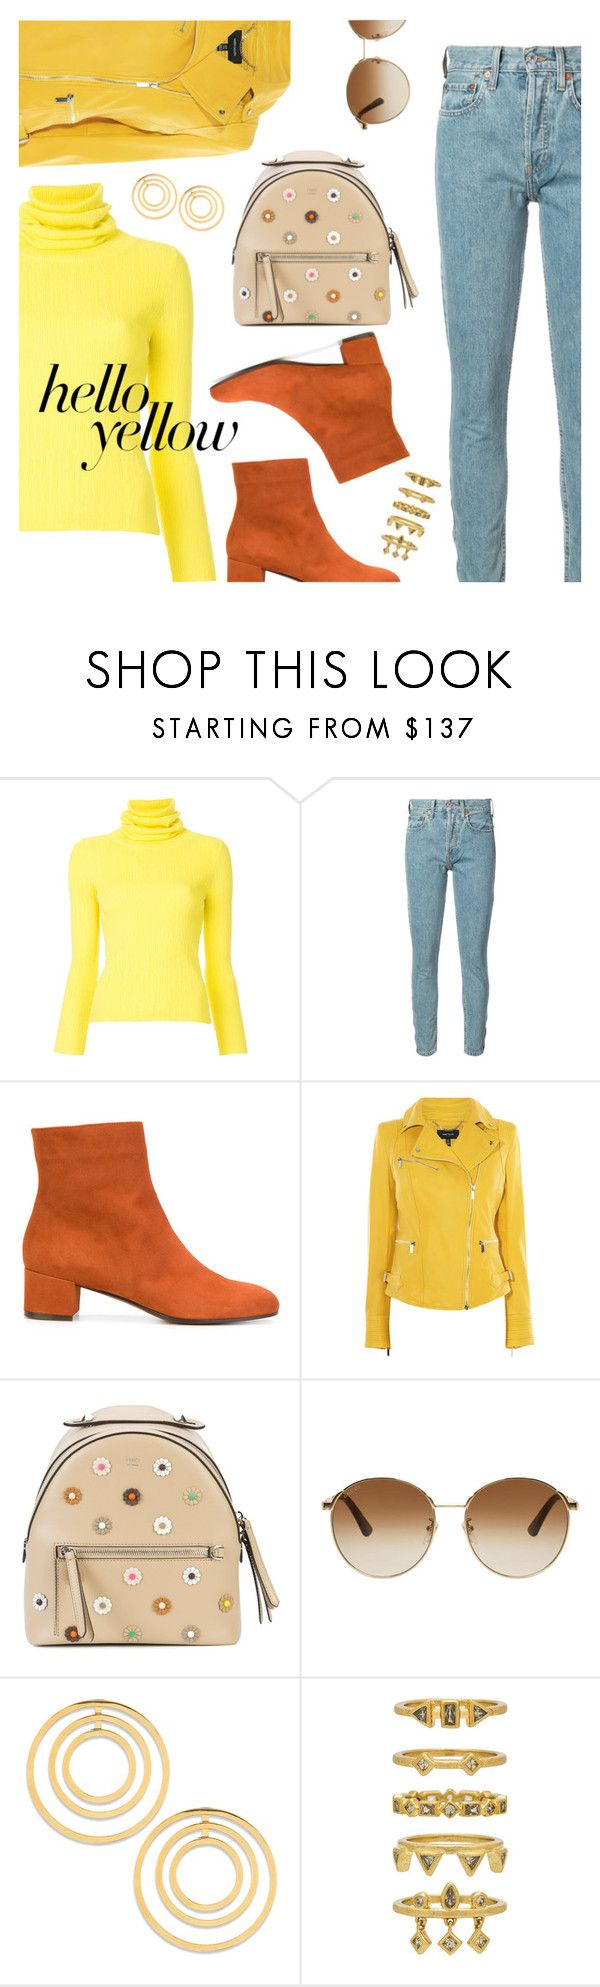 """""""Get Happy: Pops of Yellow"""" by dressedbyrose ❤ liked on Polyvore featuring Simon Miller, RE/DONE, L'Autre Chose, Karen Millen, Fendi, Gucci, Lele Sadoughi, Luv Aj, PopsOfYellow and NYFWYellow"""